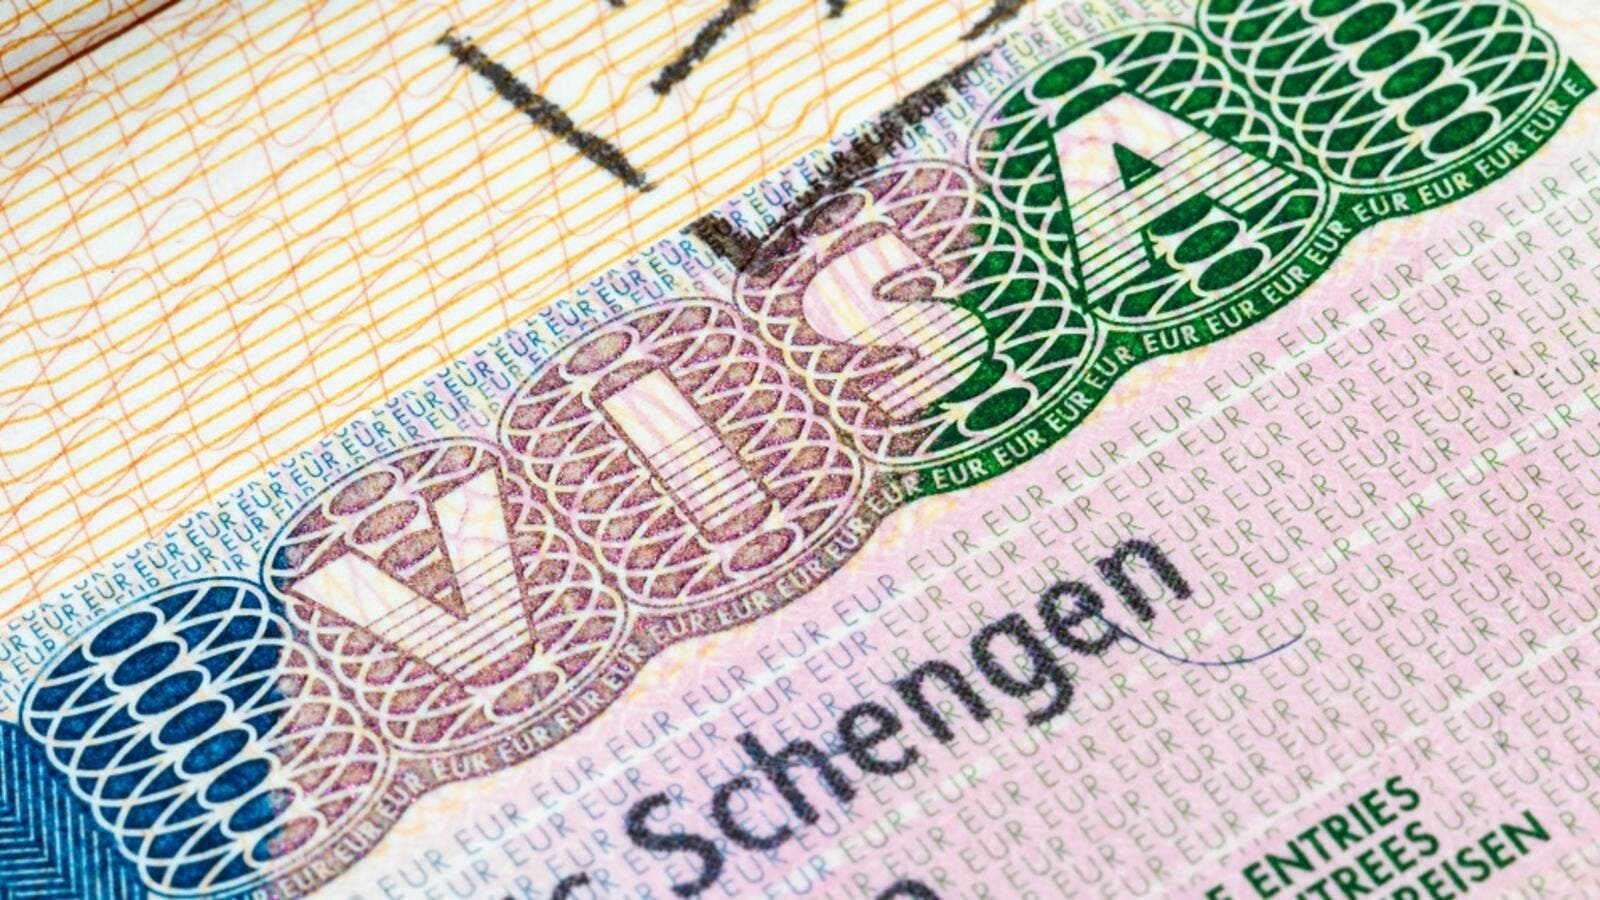 All You Need To Know About The New Schengen Visa System For UAE Nationals